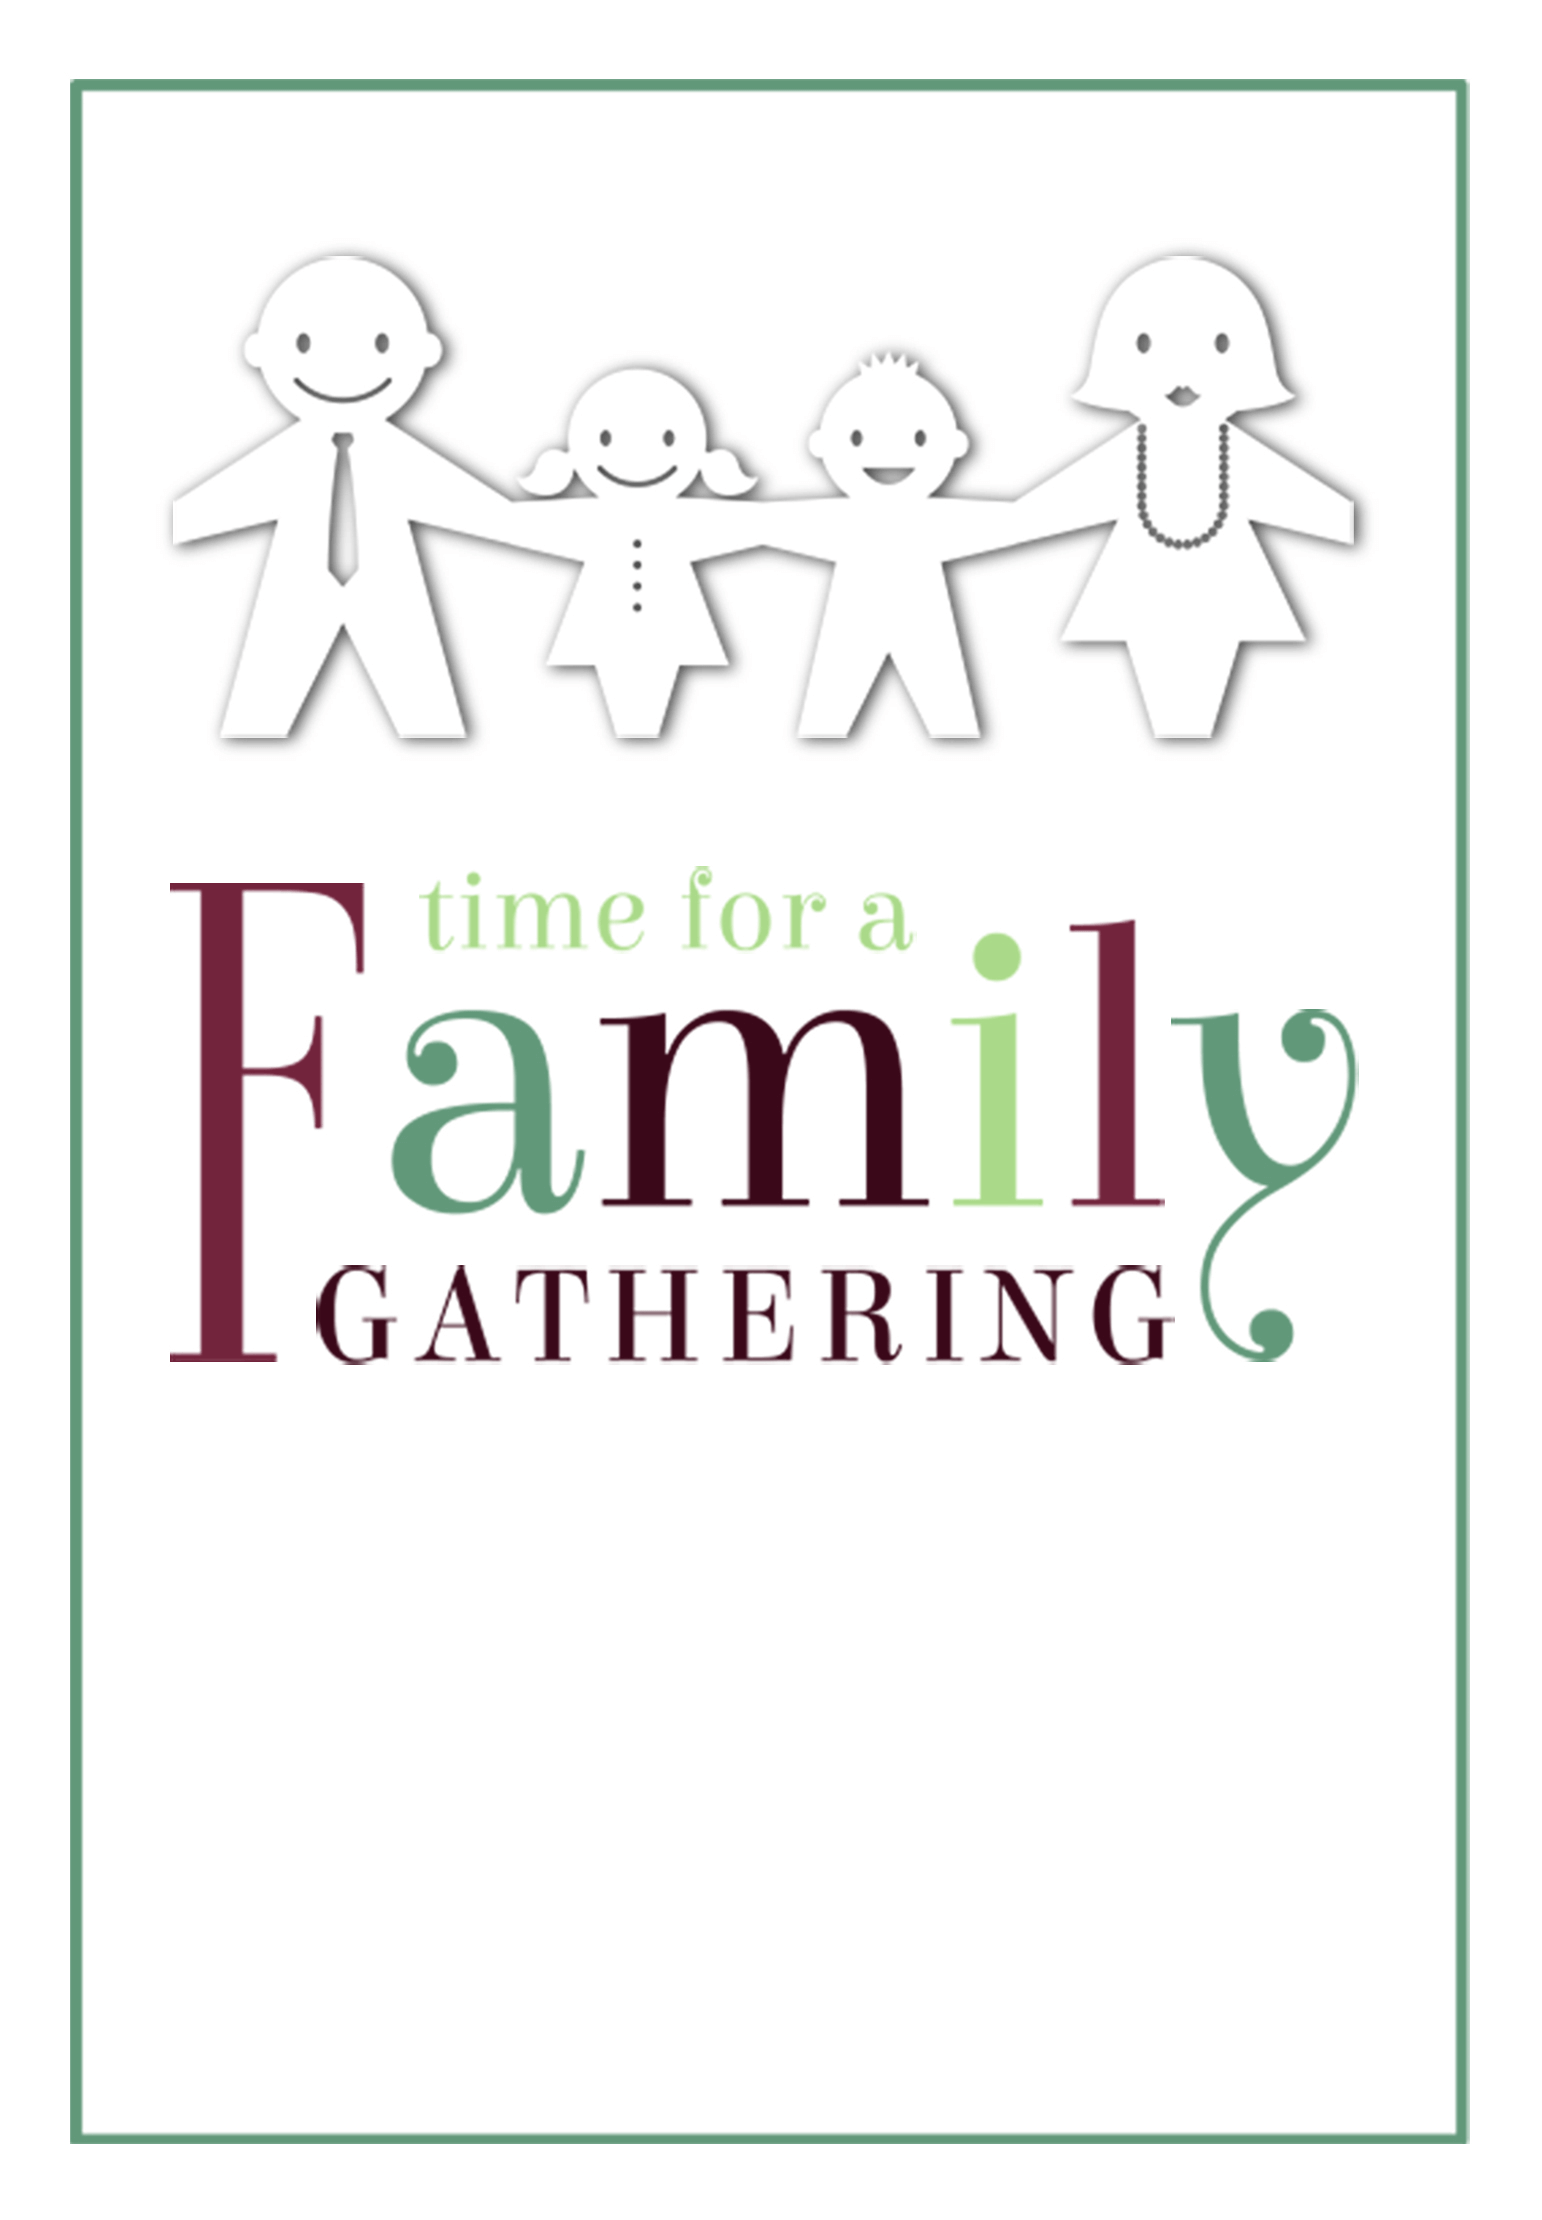 Time for a family gathering free printable family reunion time for a family gathering free printable family reunion invitation template greetings island stopboris Choice Image